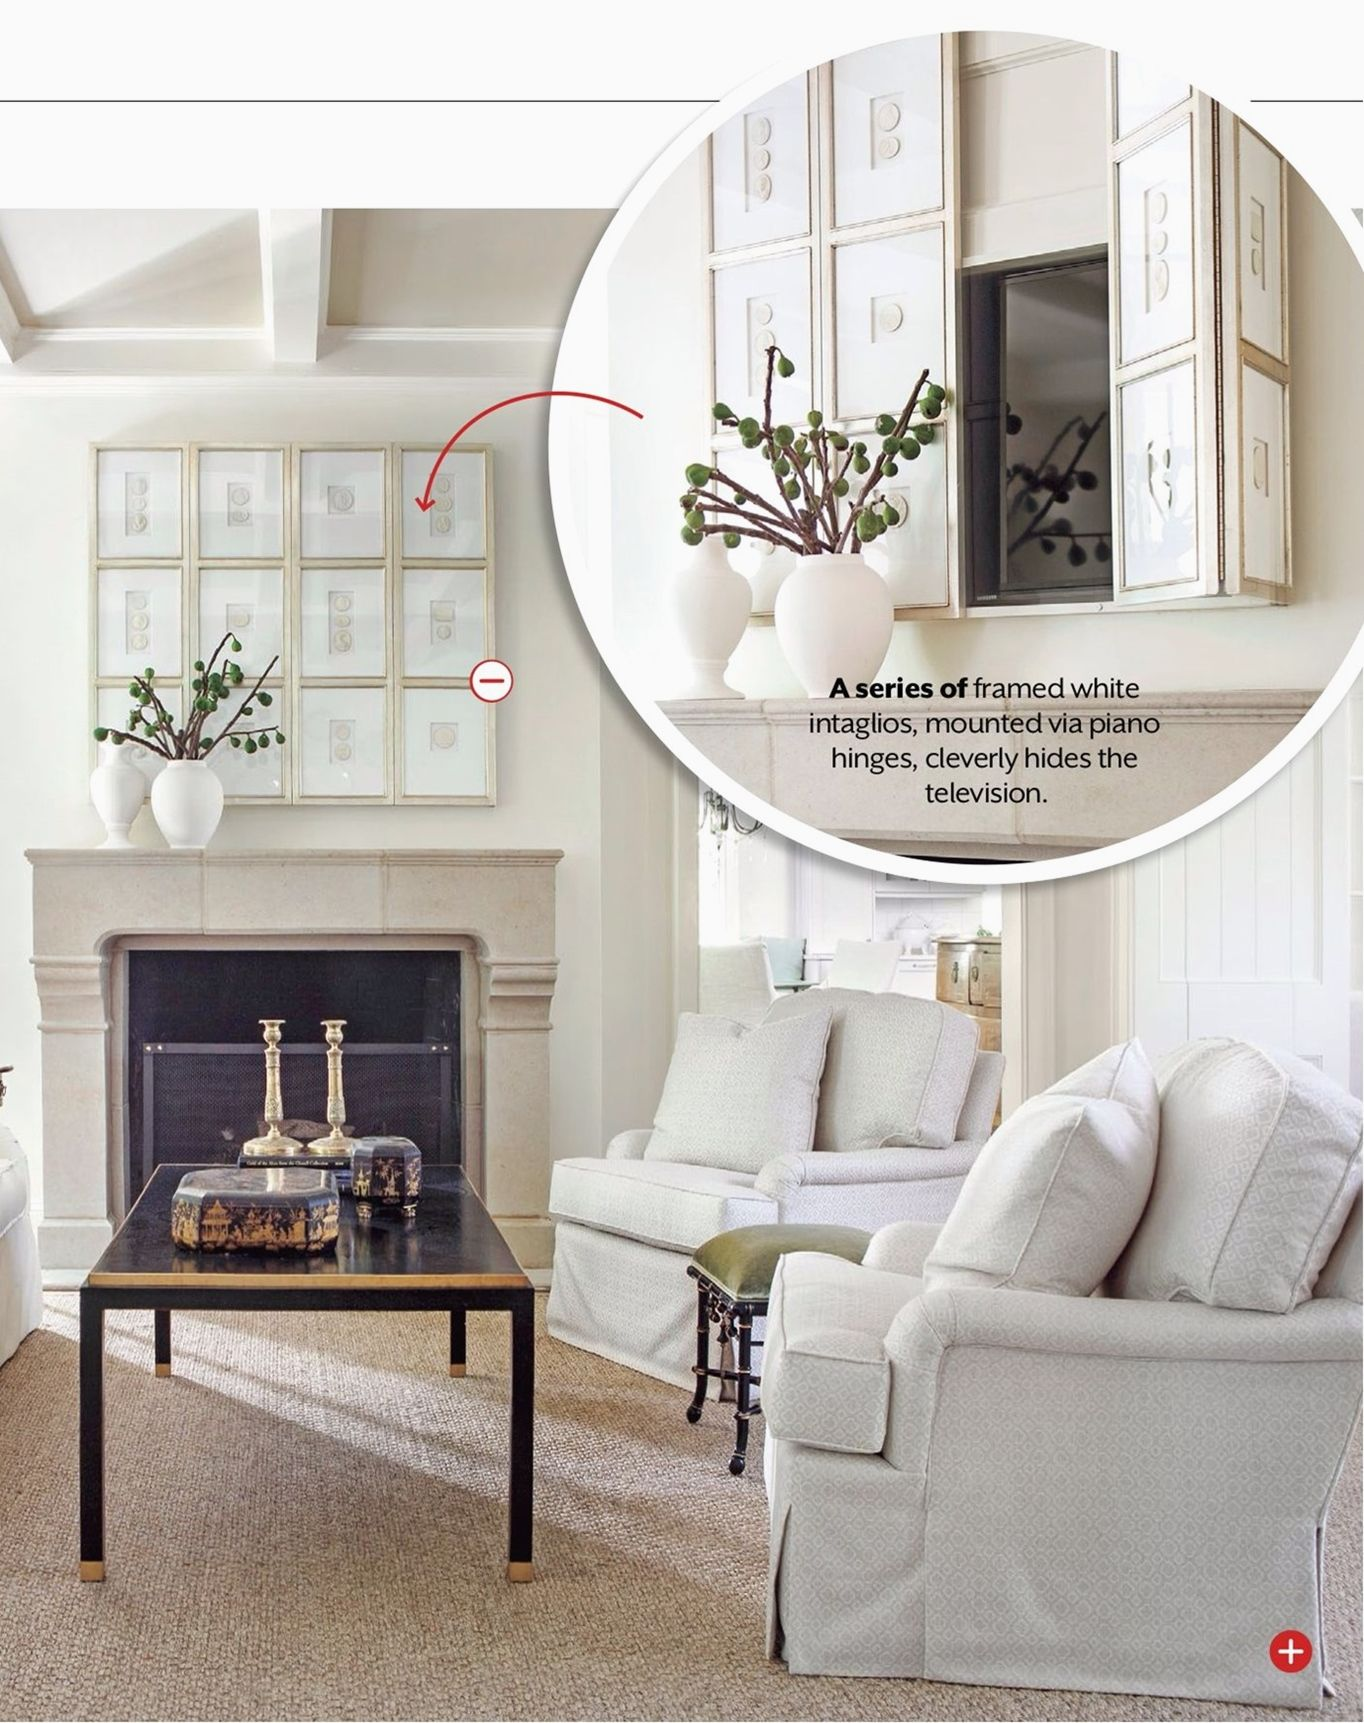 how to decorate my living room walls | DIY - Misc Home | Pinterest ...